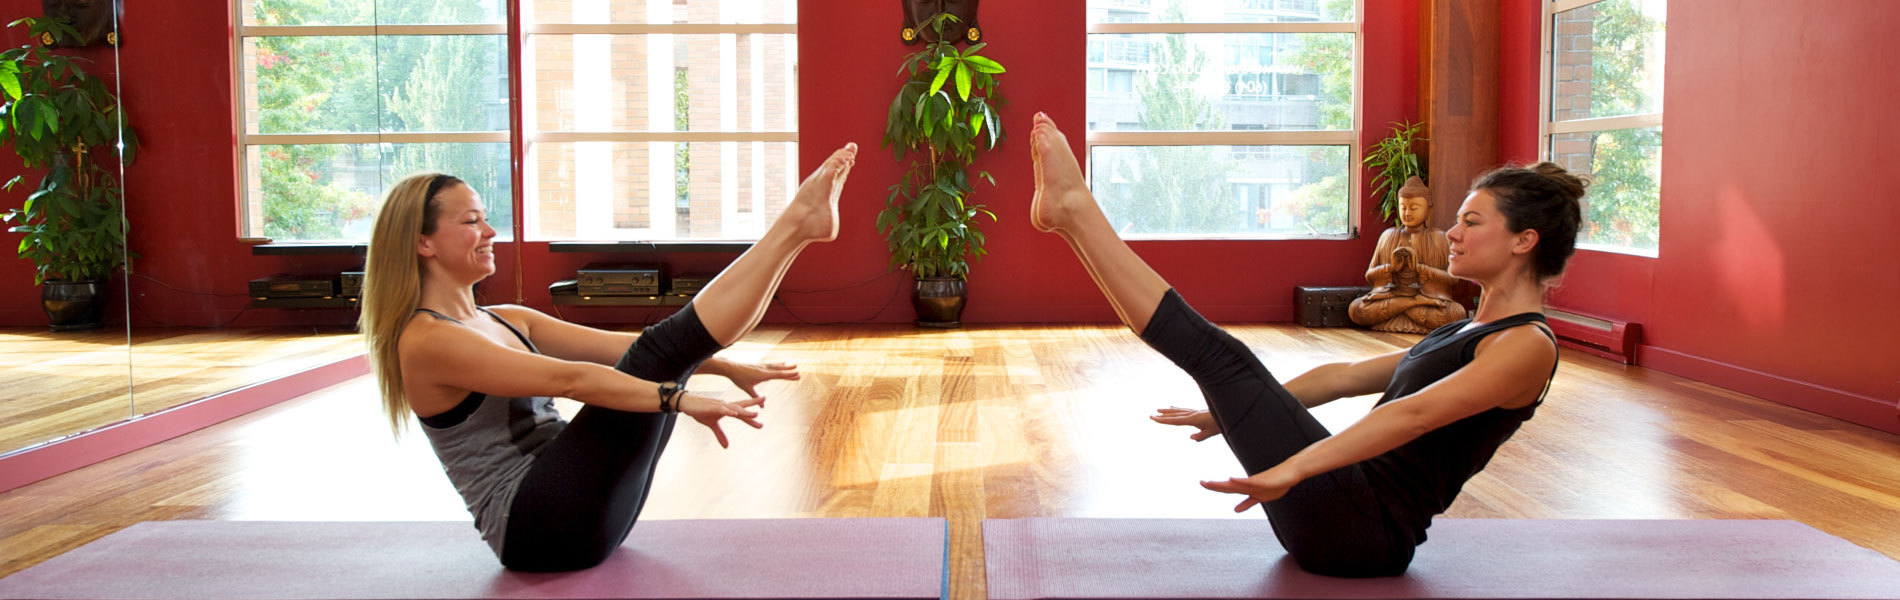 Holding_Position_Keeping_Retention_Rates_High_in_your_Yoga_Classes_1900x600.jpg